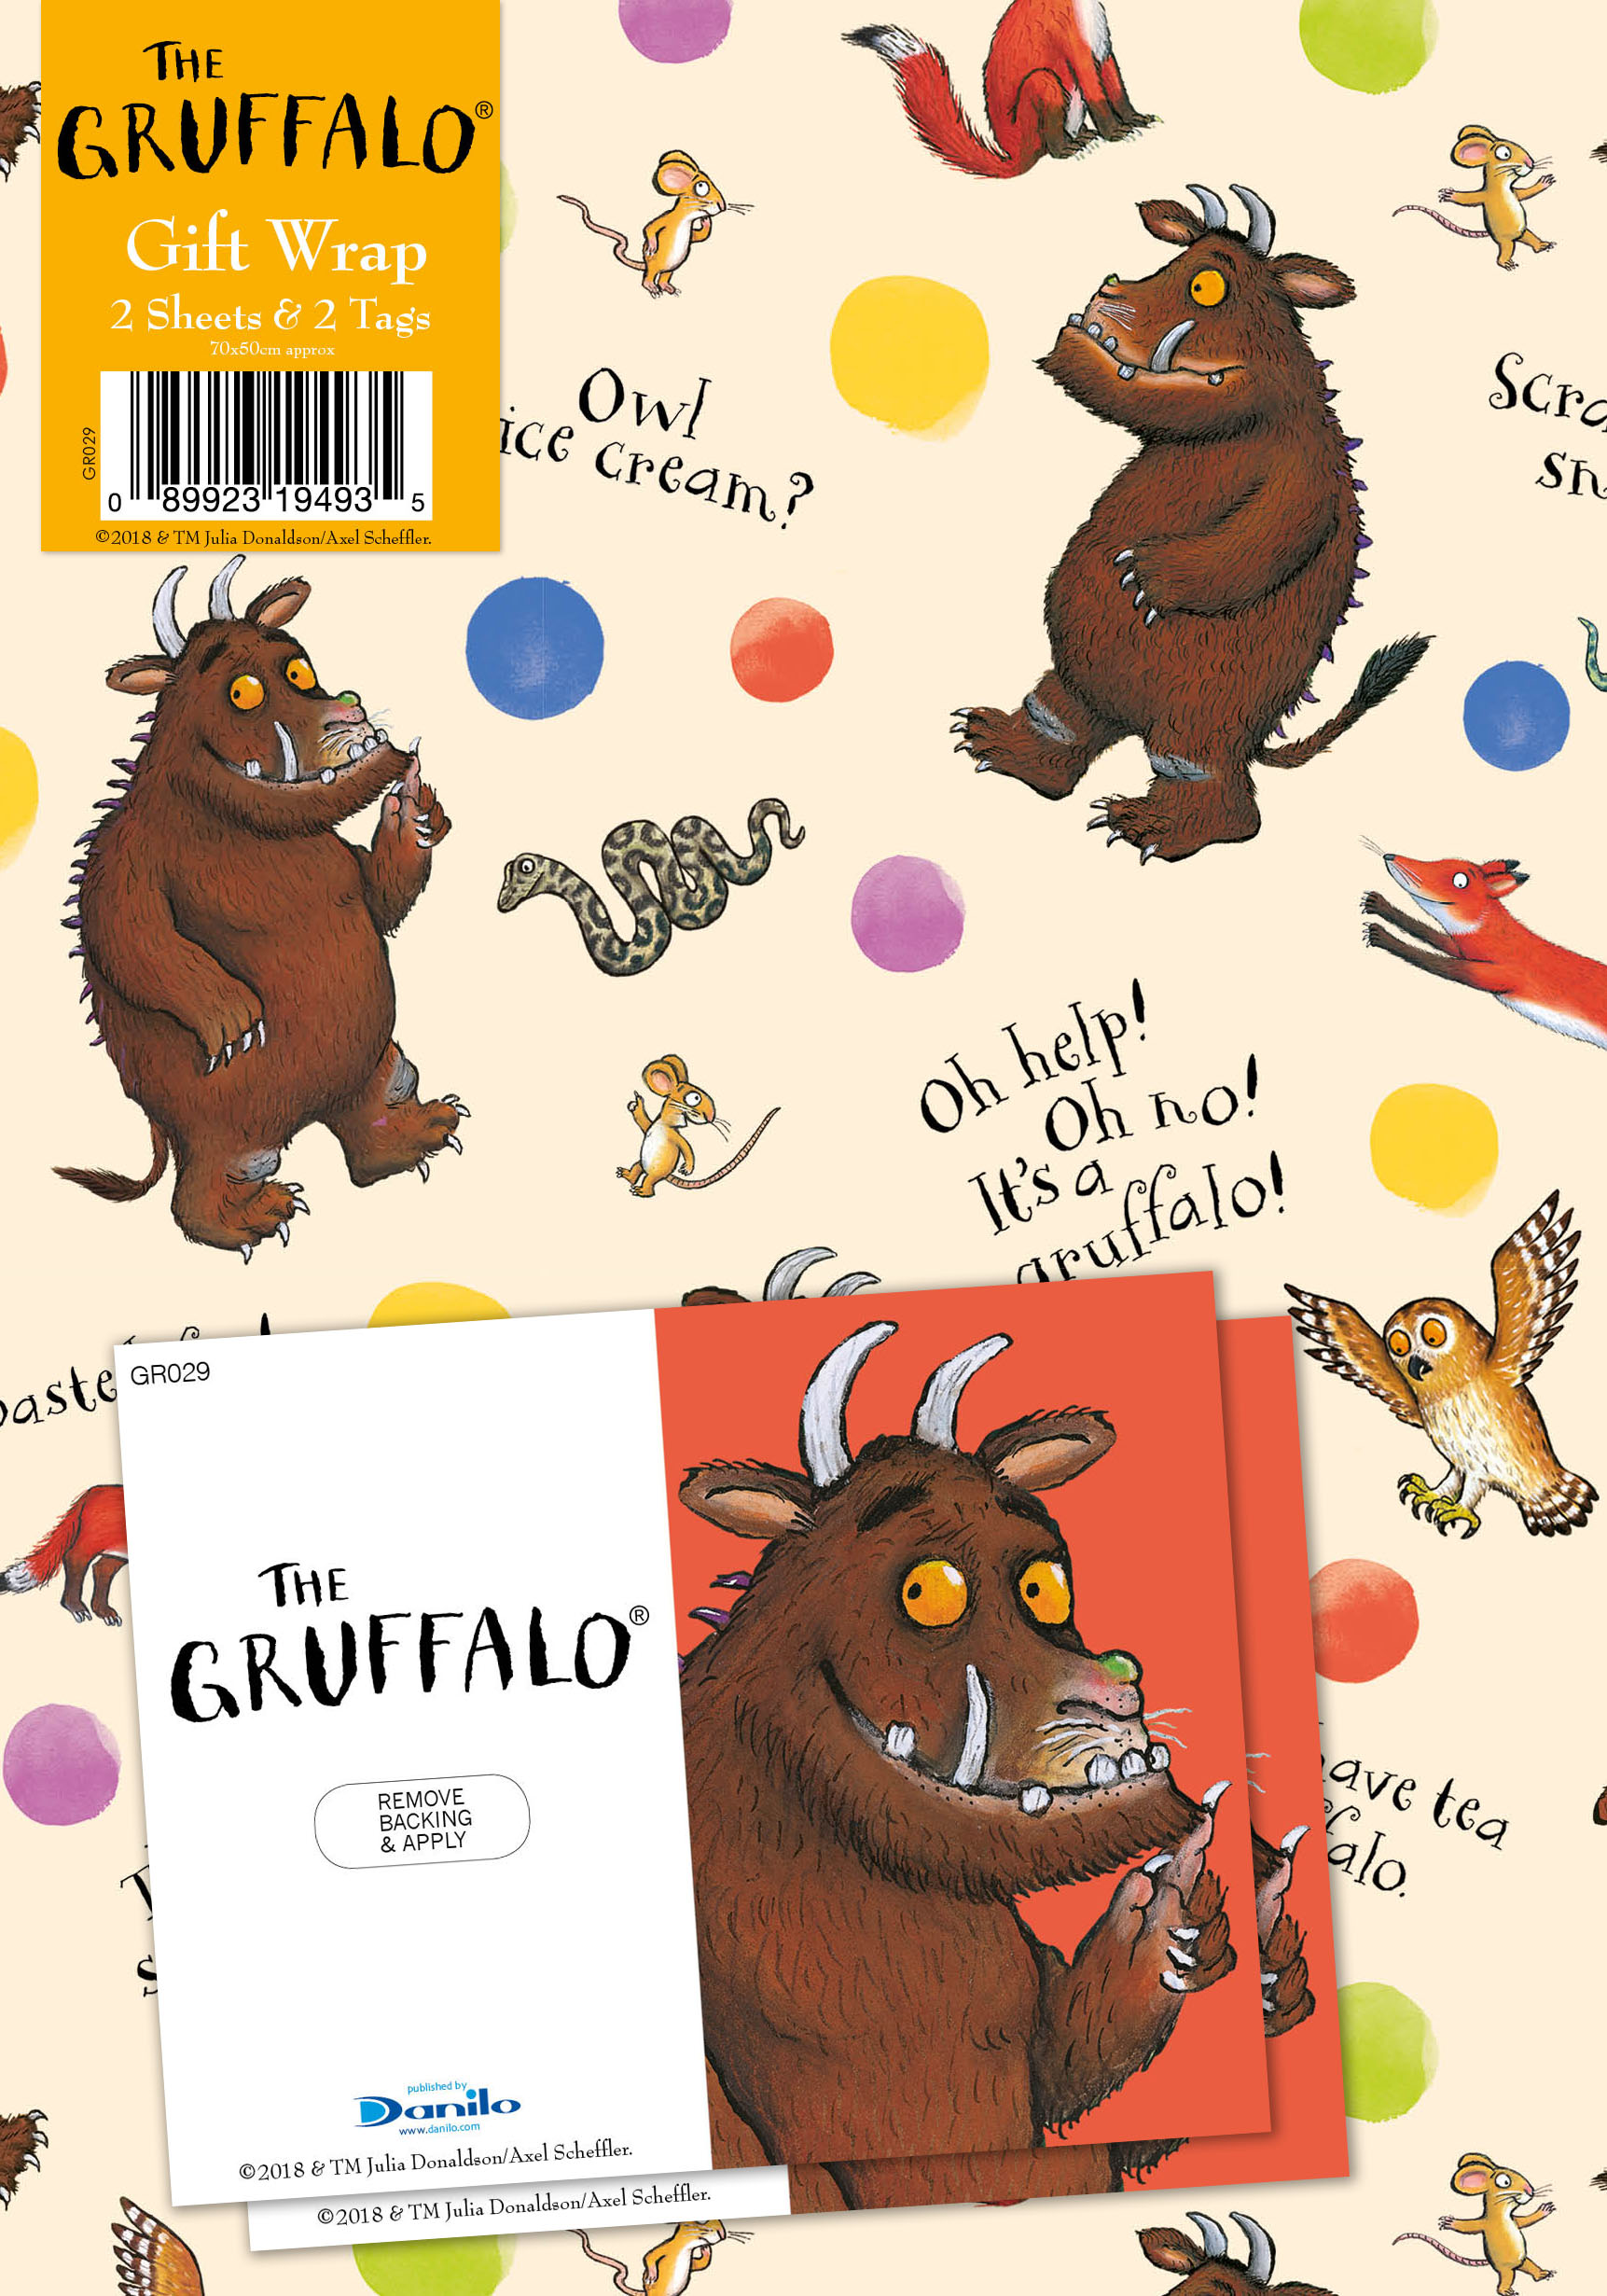 The Gruffalo Wrapping Paper 2 Sheets and 2 Tags